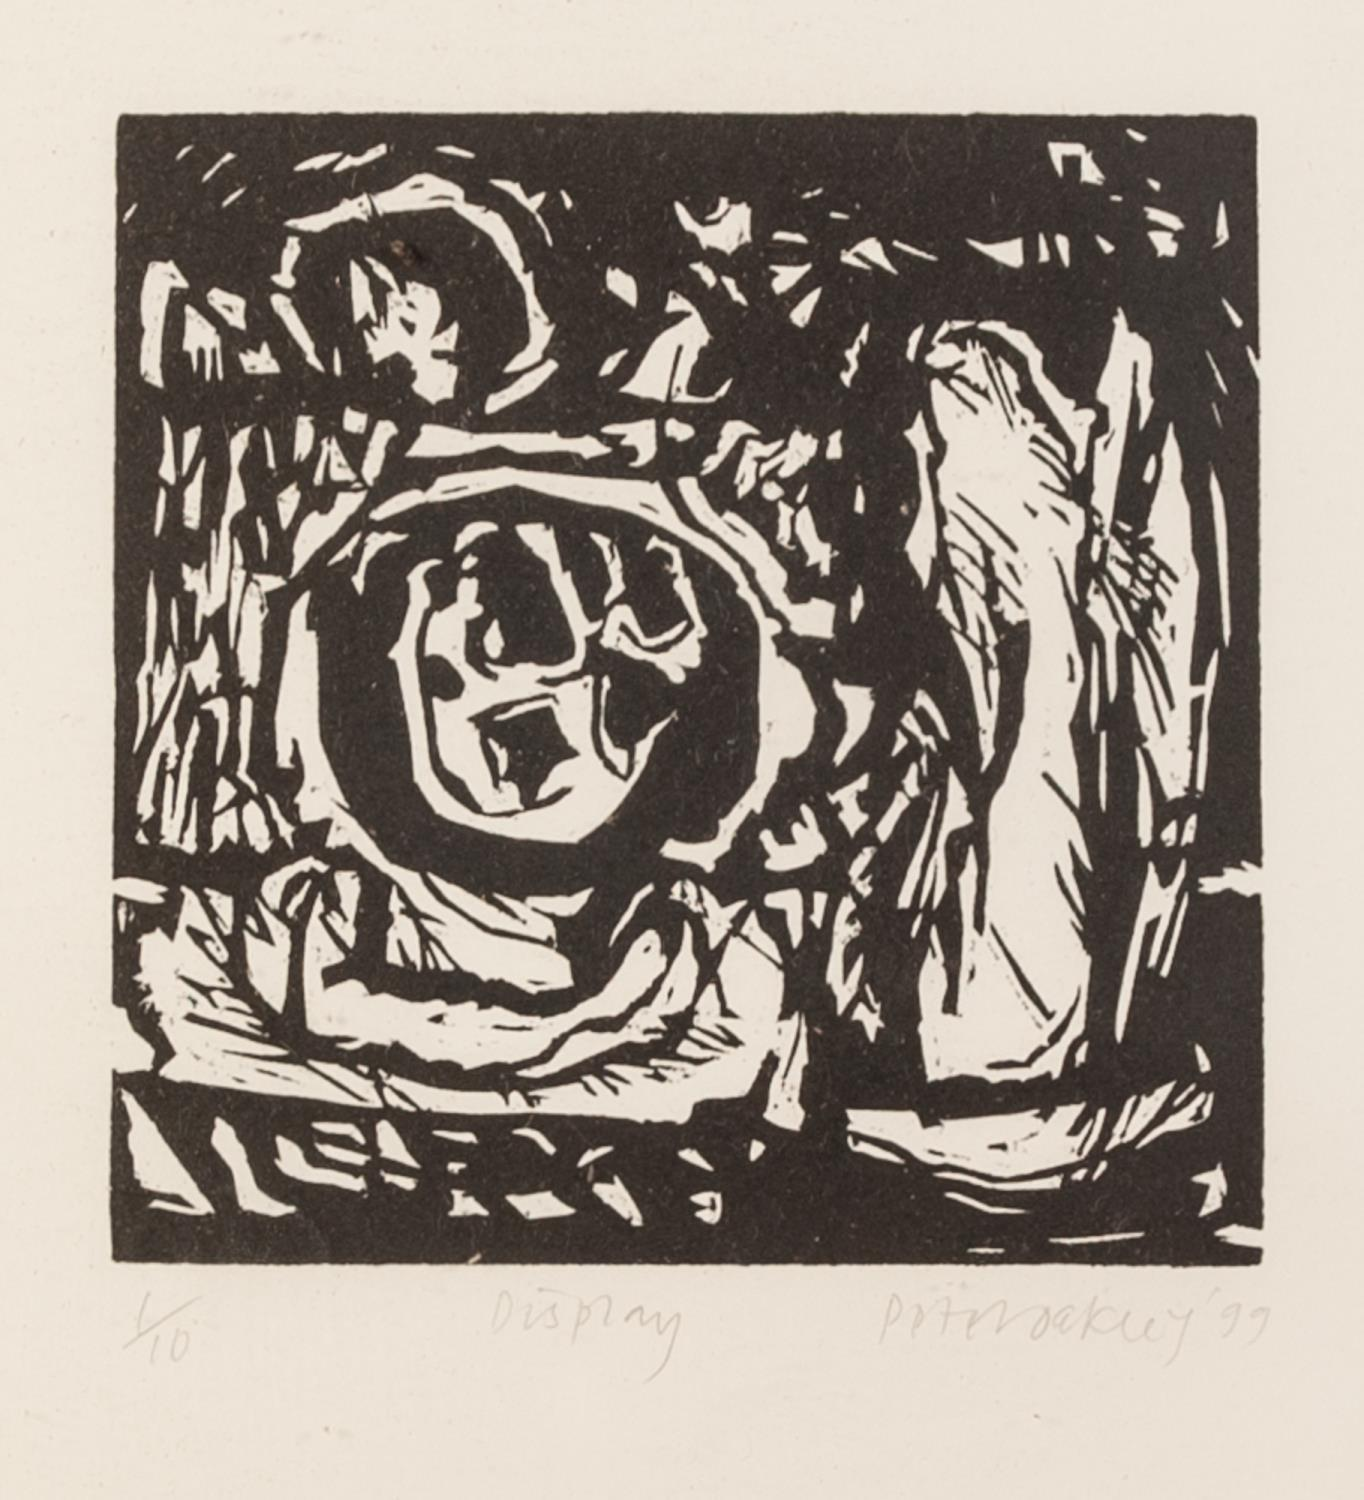 PETER OAKLEY (1935-2007) SEVEN ARTIST SIGNED LIMITED EDITION BLACK AND WHITE WOODCUTS OF SIMILAR - Image 7 of 8